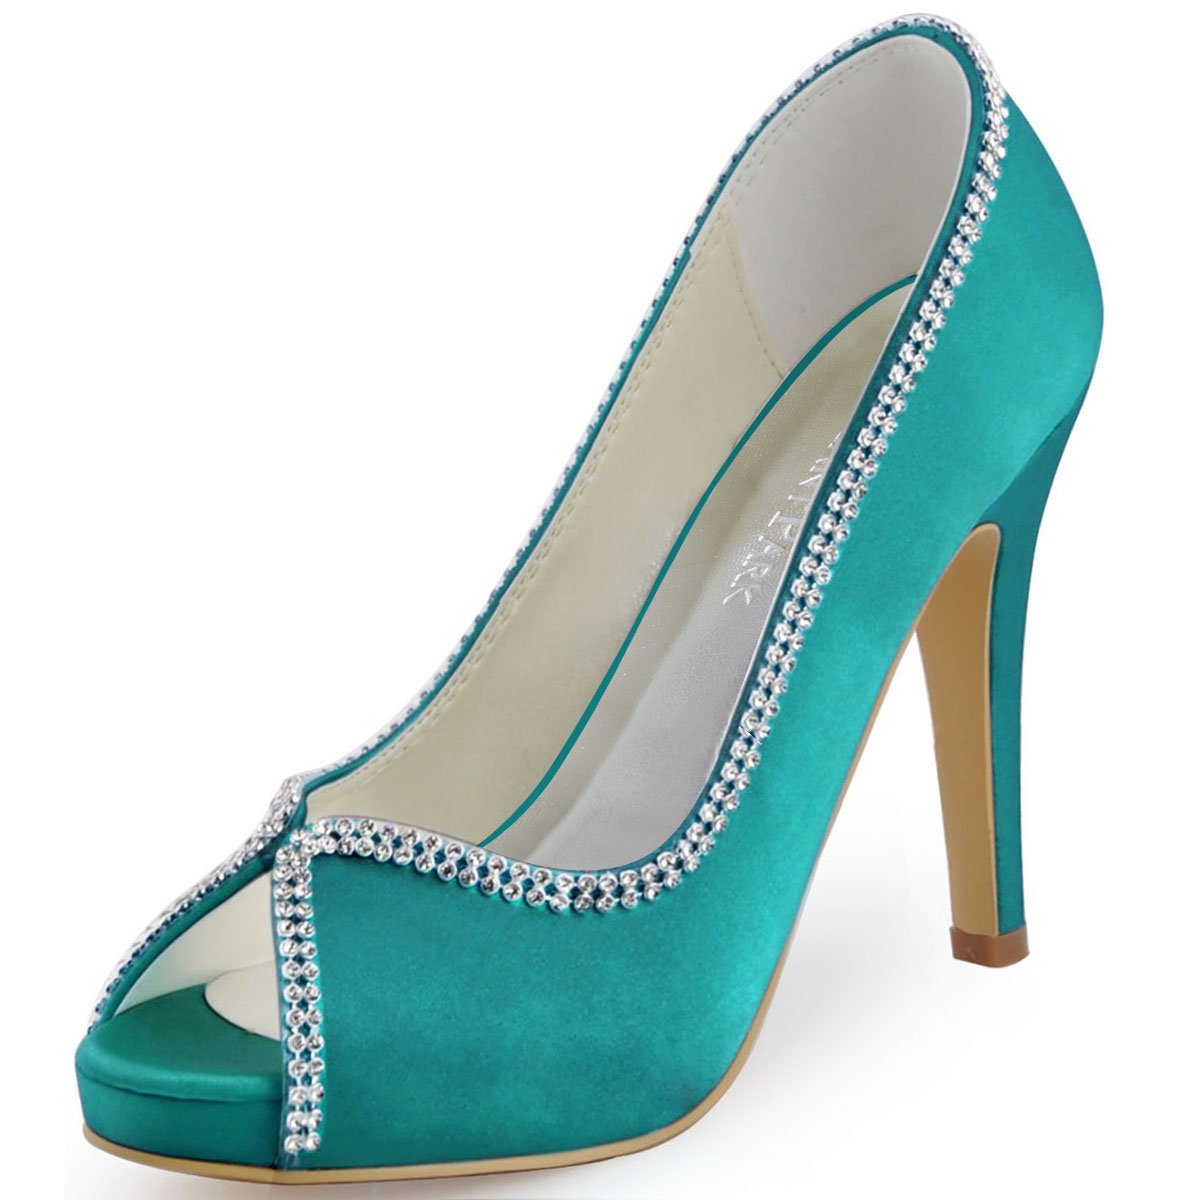 ElegantPark EP11083 Women Pumps Peep Toe Rhinestones Platform High Heel Satin Evening Wedding Dress Shoes B011B26MI4 6 B(M) US (true fitting 6.5 US)|Teal